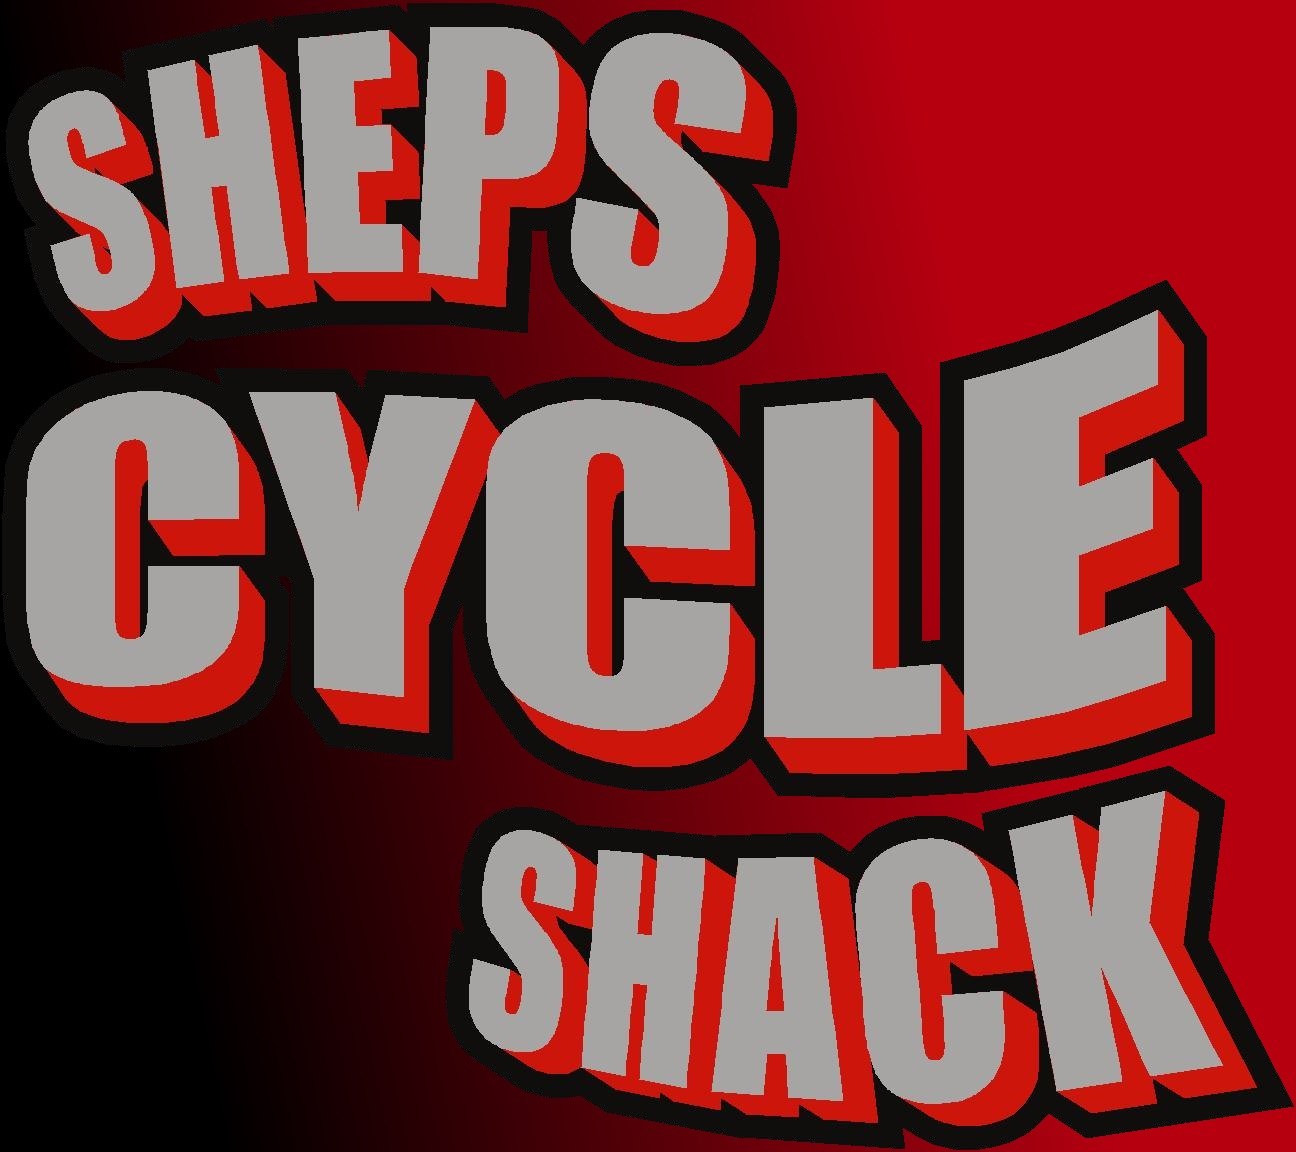 Sheps Cycle Shack in red & black